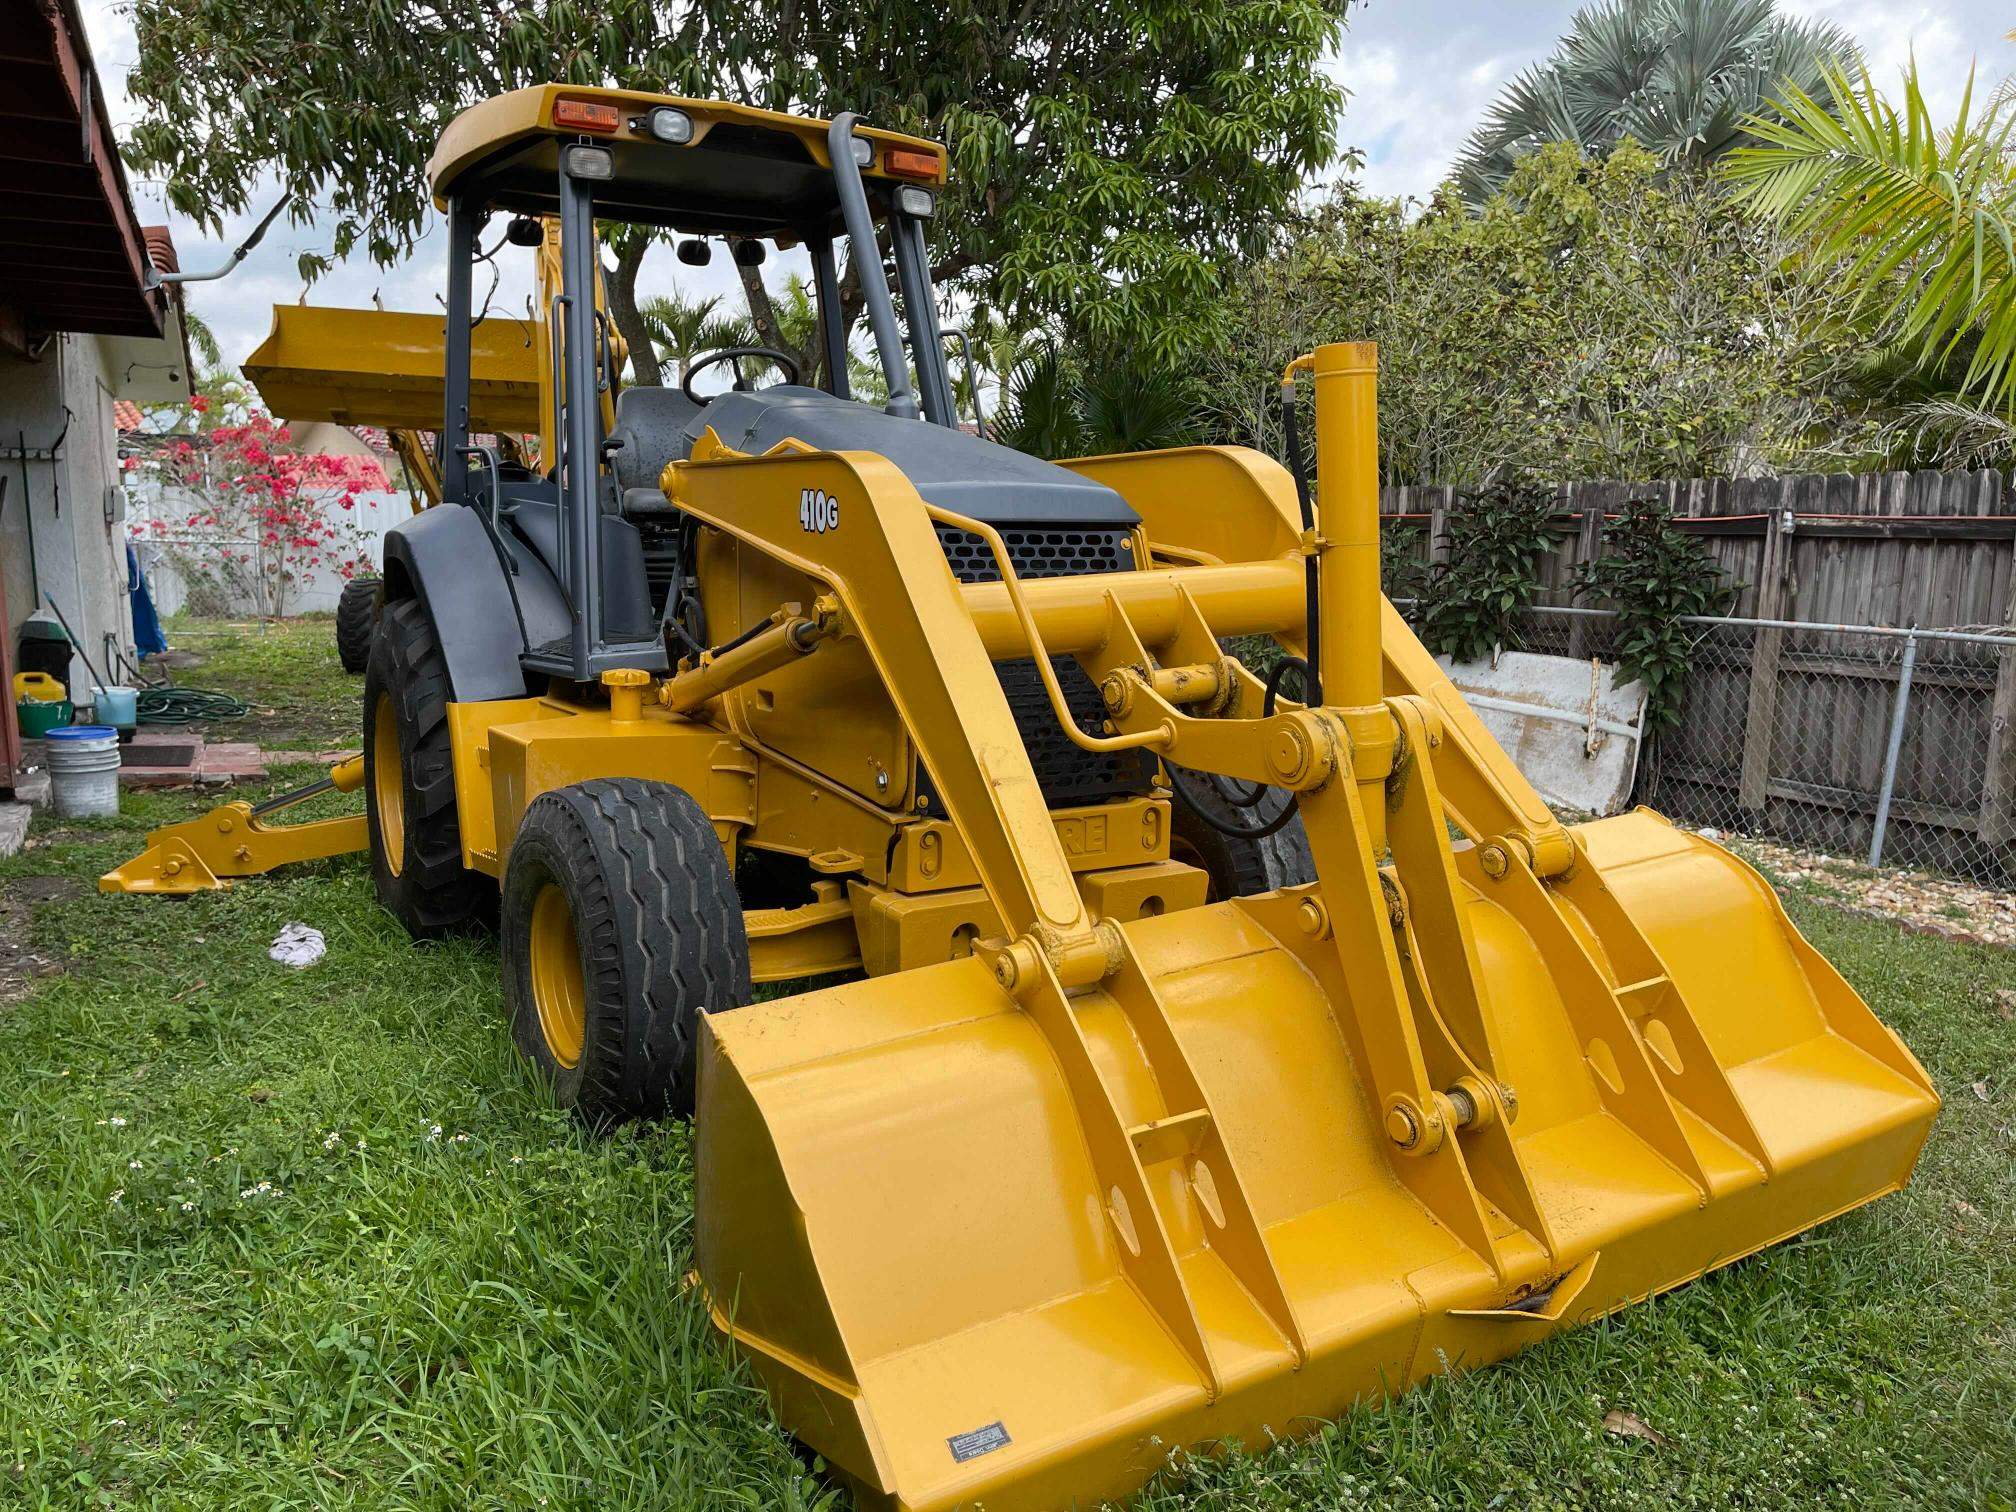 2004 John Deere 410BACKHOE for sale in Homestead, FL